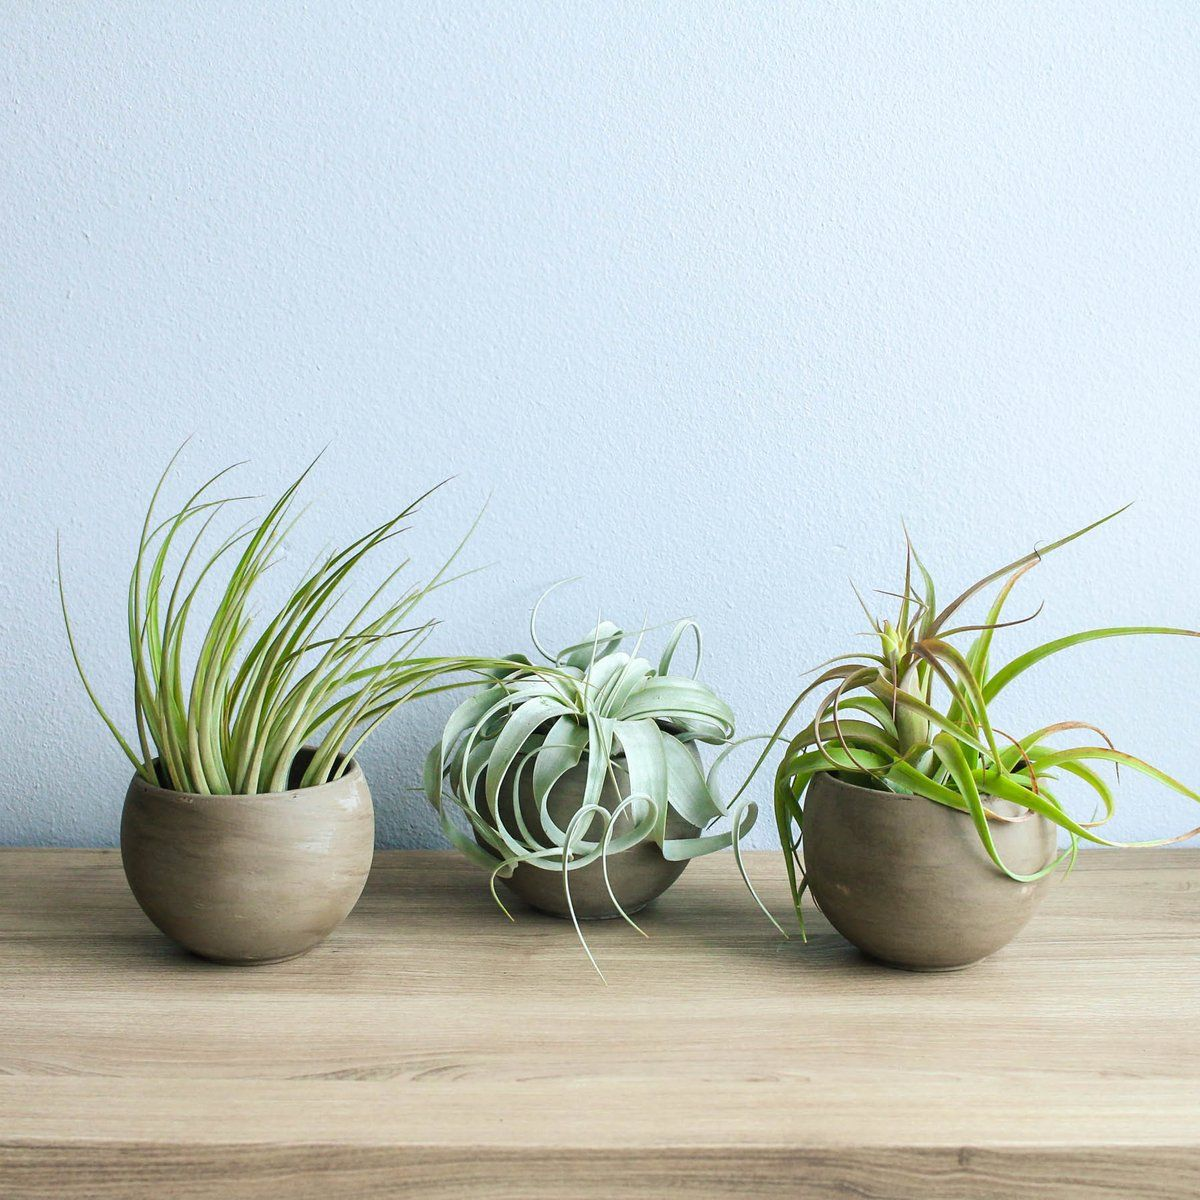 Tillandsiart-Airplant Planter-Hand blue AIR PLANT NOT INCLUDED